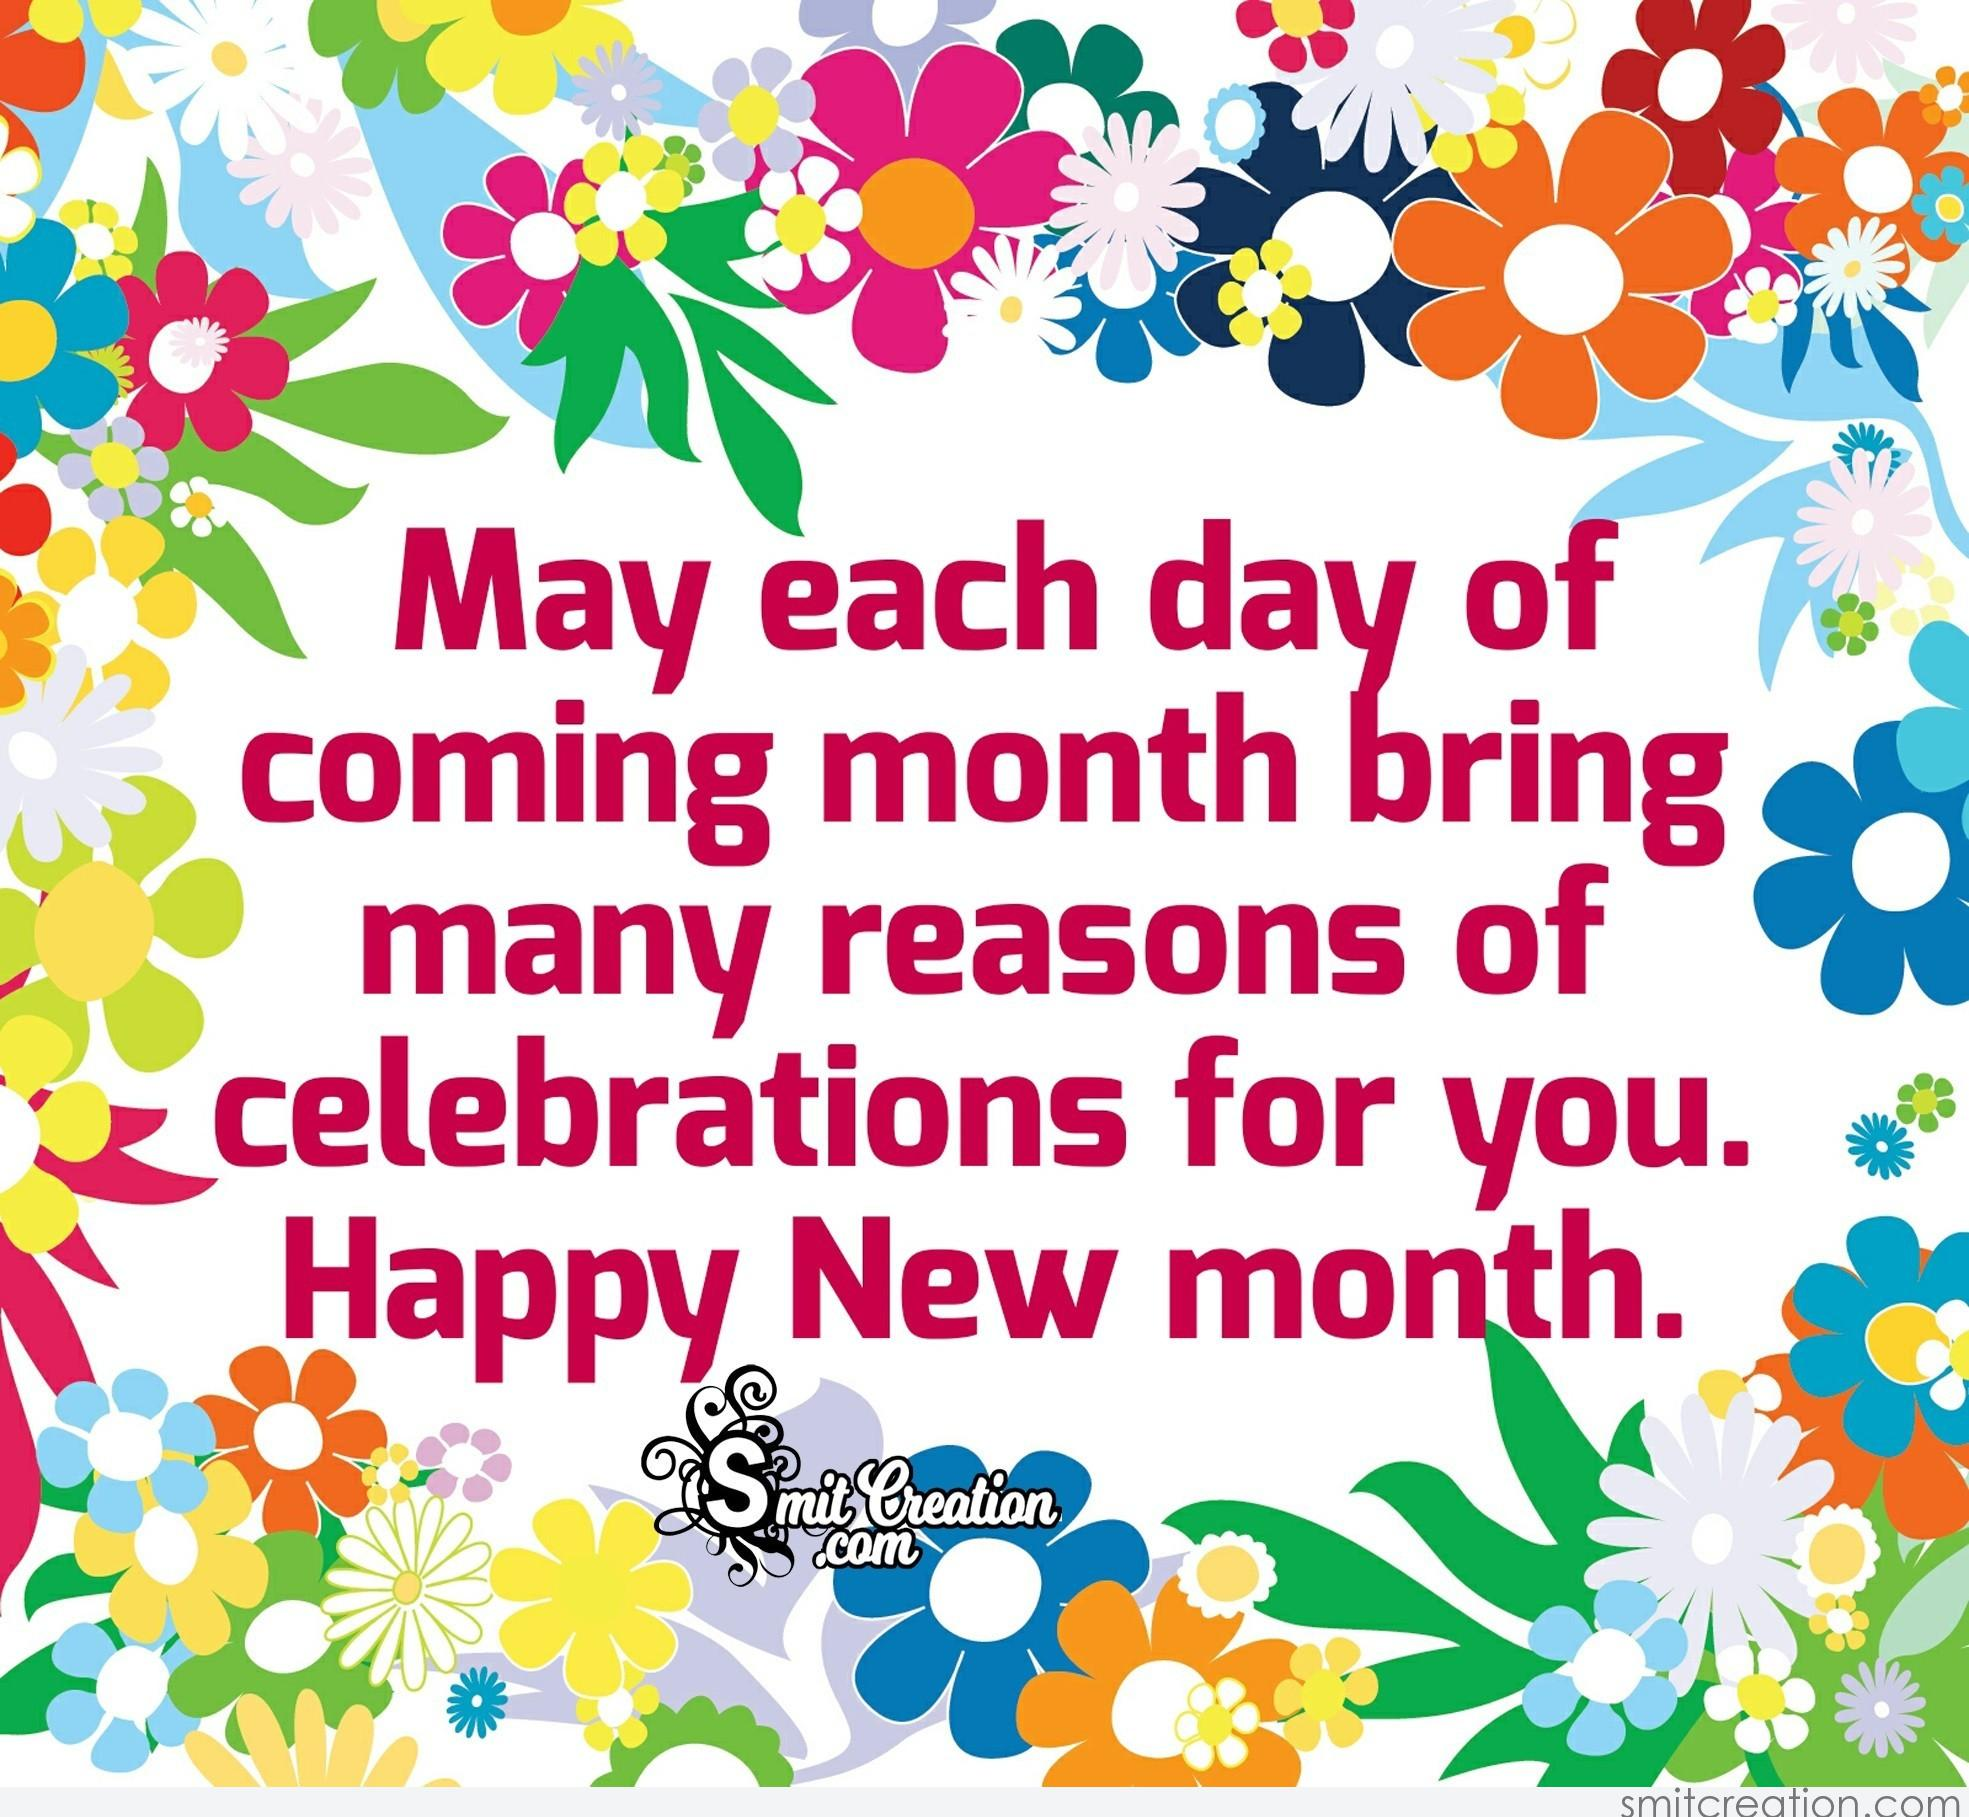 Month pictures and graphics smitcreation page 2 may each day of coming month bring many reasons of celebrations for you happy new month m4hsunfo